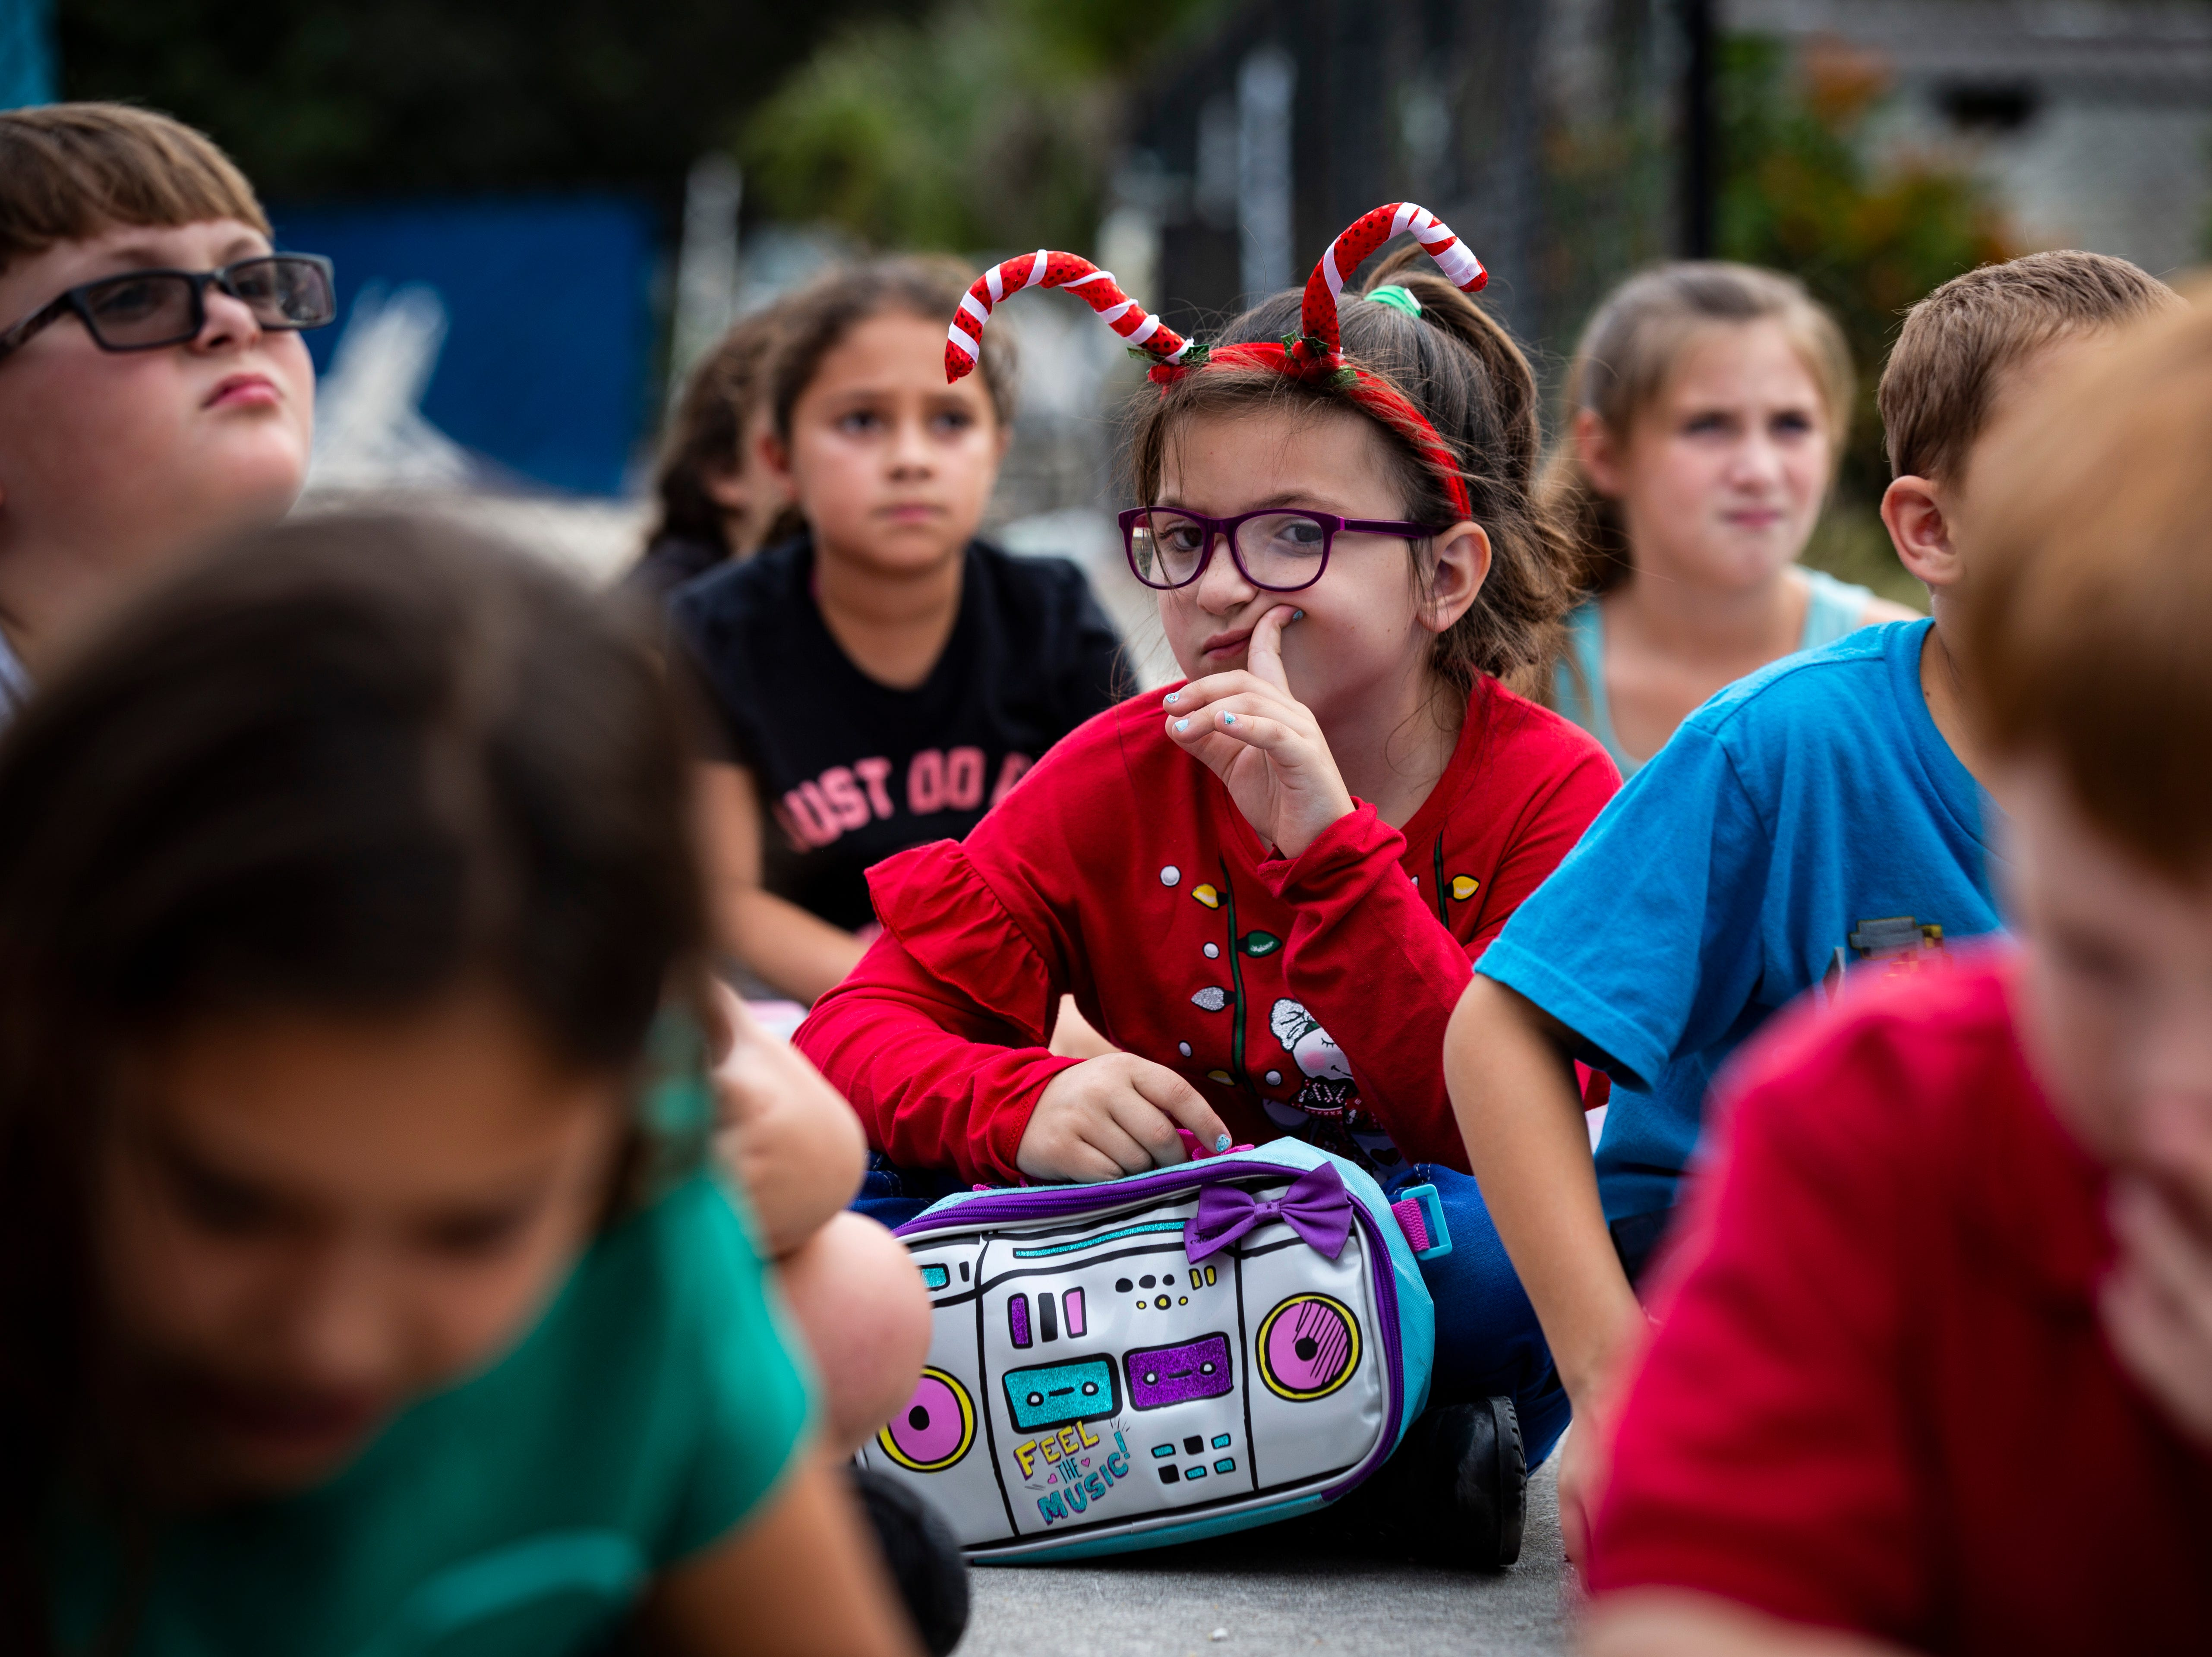 Josie Robinson, 7, waits to go walk on the nature trail during the YMCA after school program at Bonita Springs on Wednesday afternoon, Dec. 19, 2018.